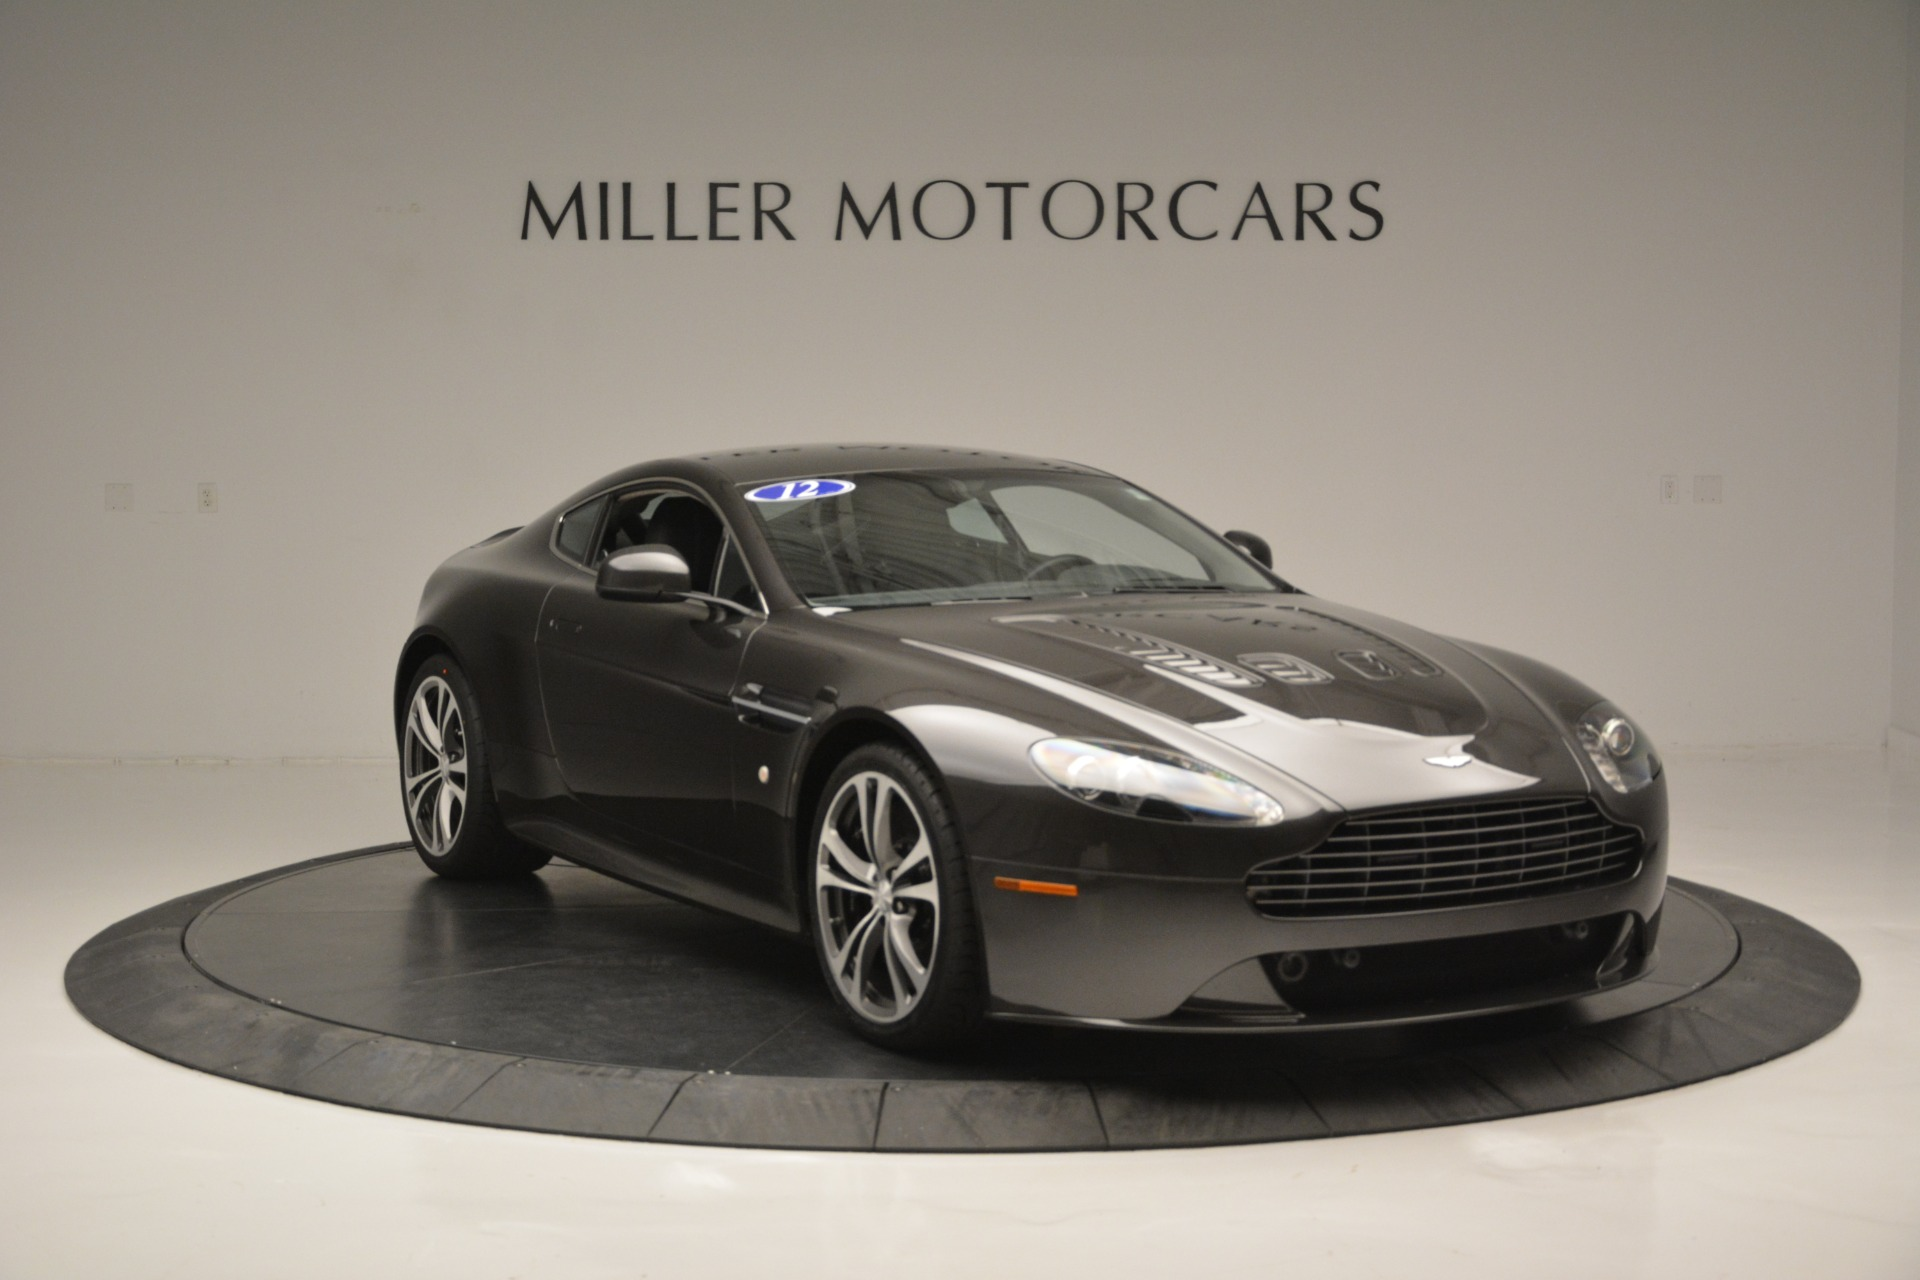 Used 2012 Aston Martin V12 Vantage Coupe For Sale In Westport, CT 2544_p11